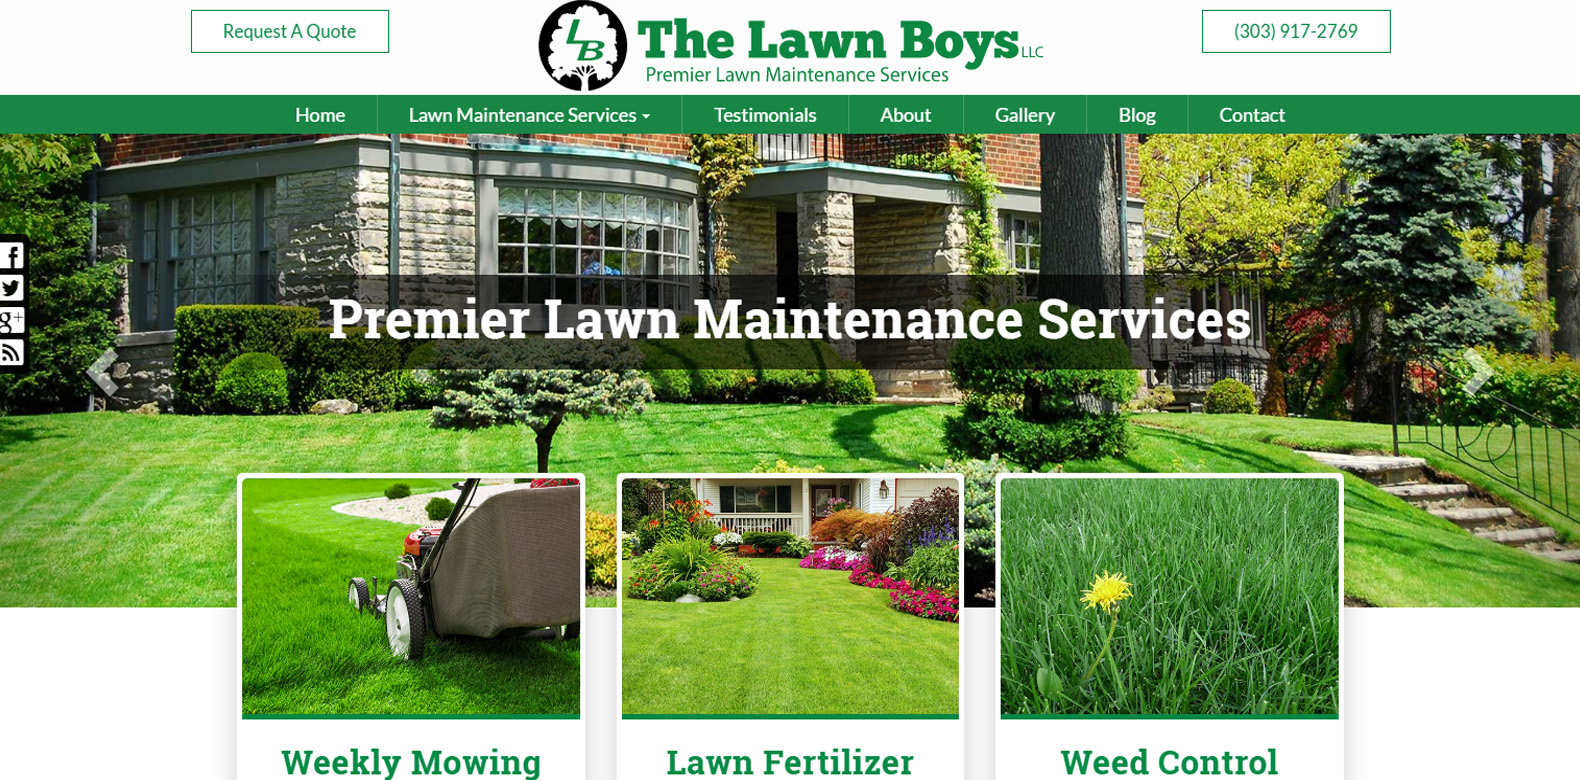 New Upgrade Launched: The Lawn Boys